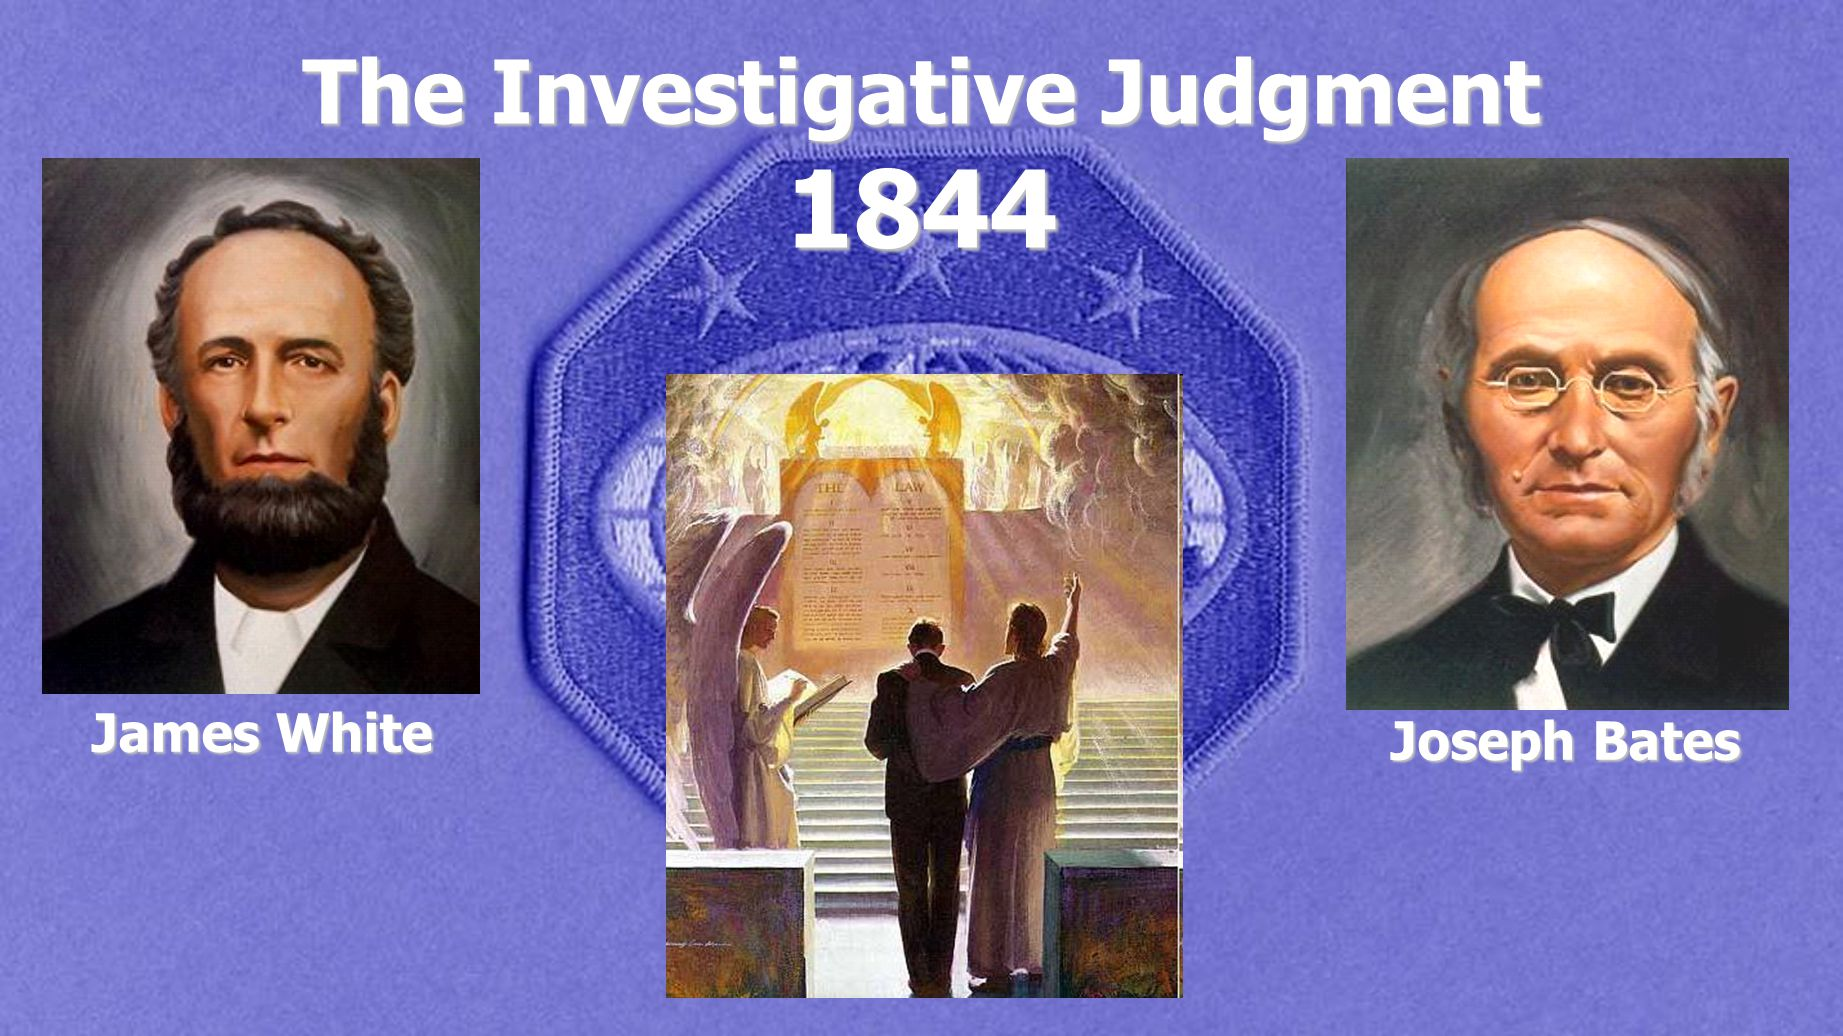 The Investigative Judgment 1844